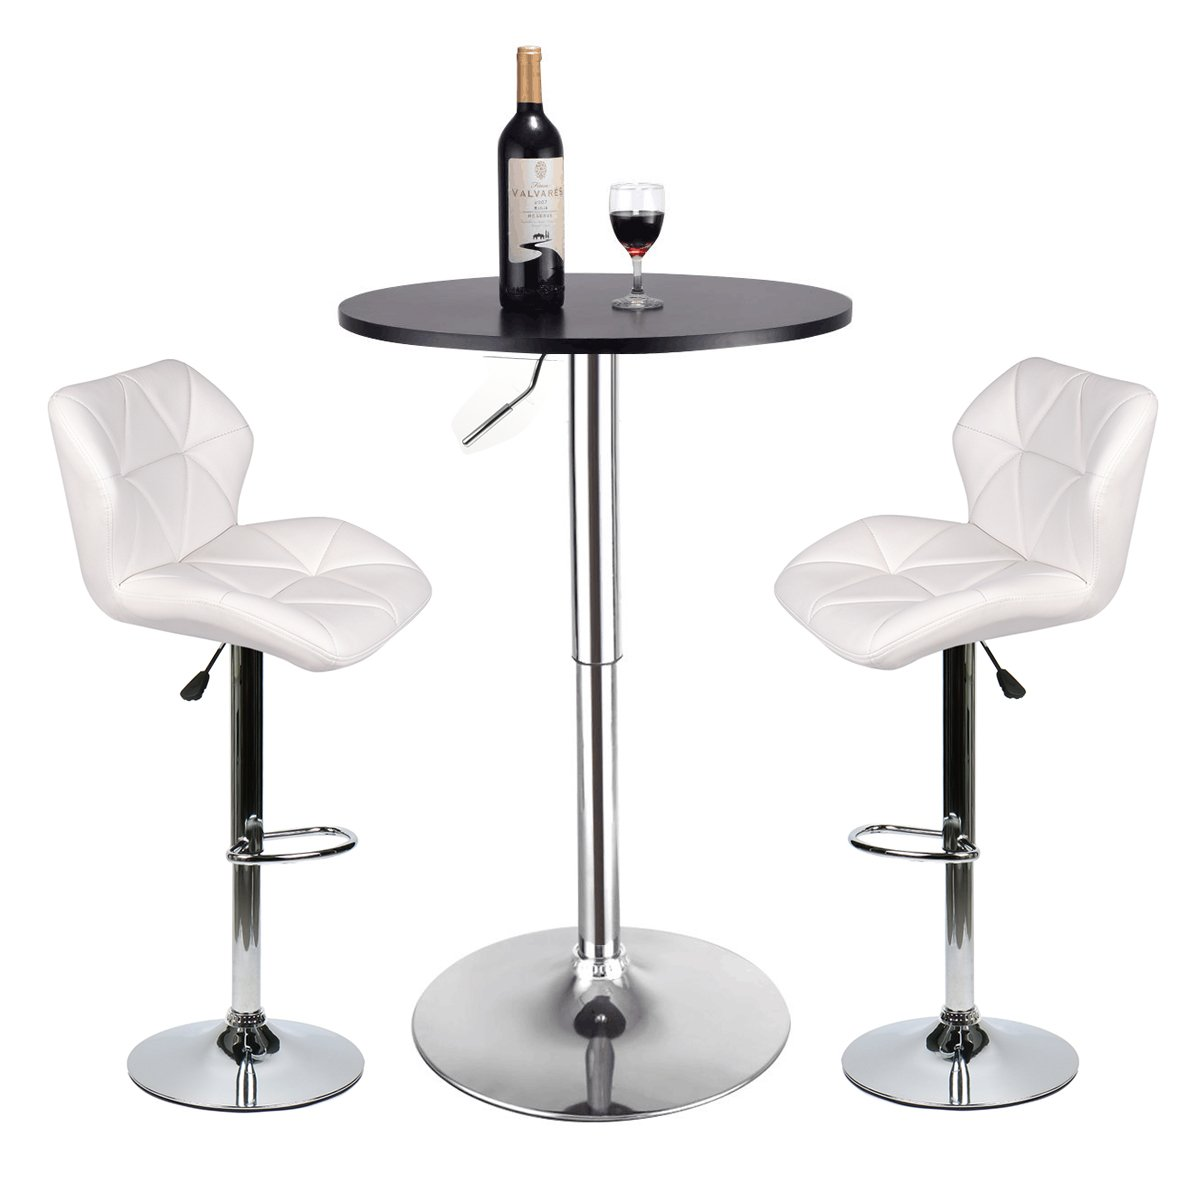 Bar Table and Chairs Set of 3 – Heigh Adjustable Round Table and 2 Swivel White Pub Stools for Dining Room Home Kitchen Bistro(Set 7)